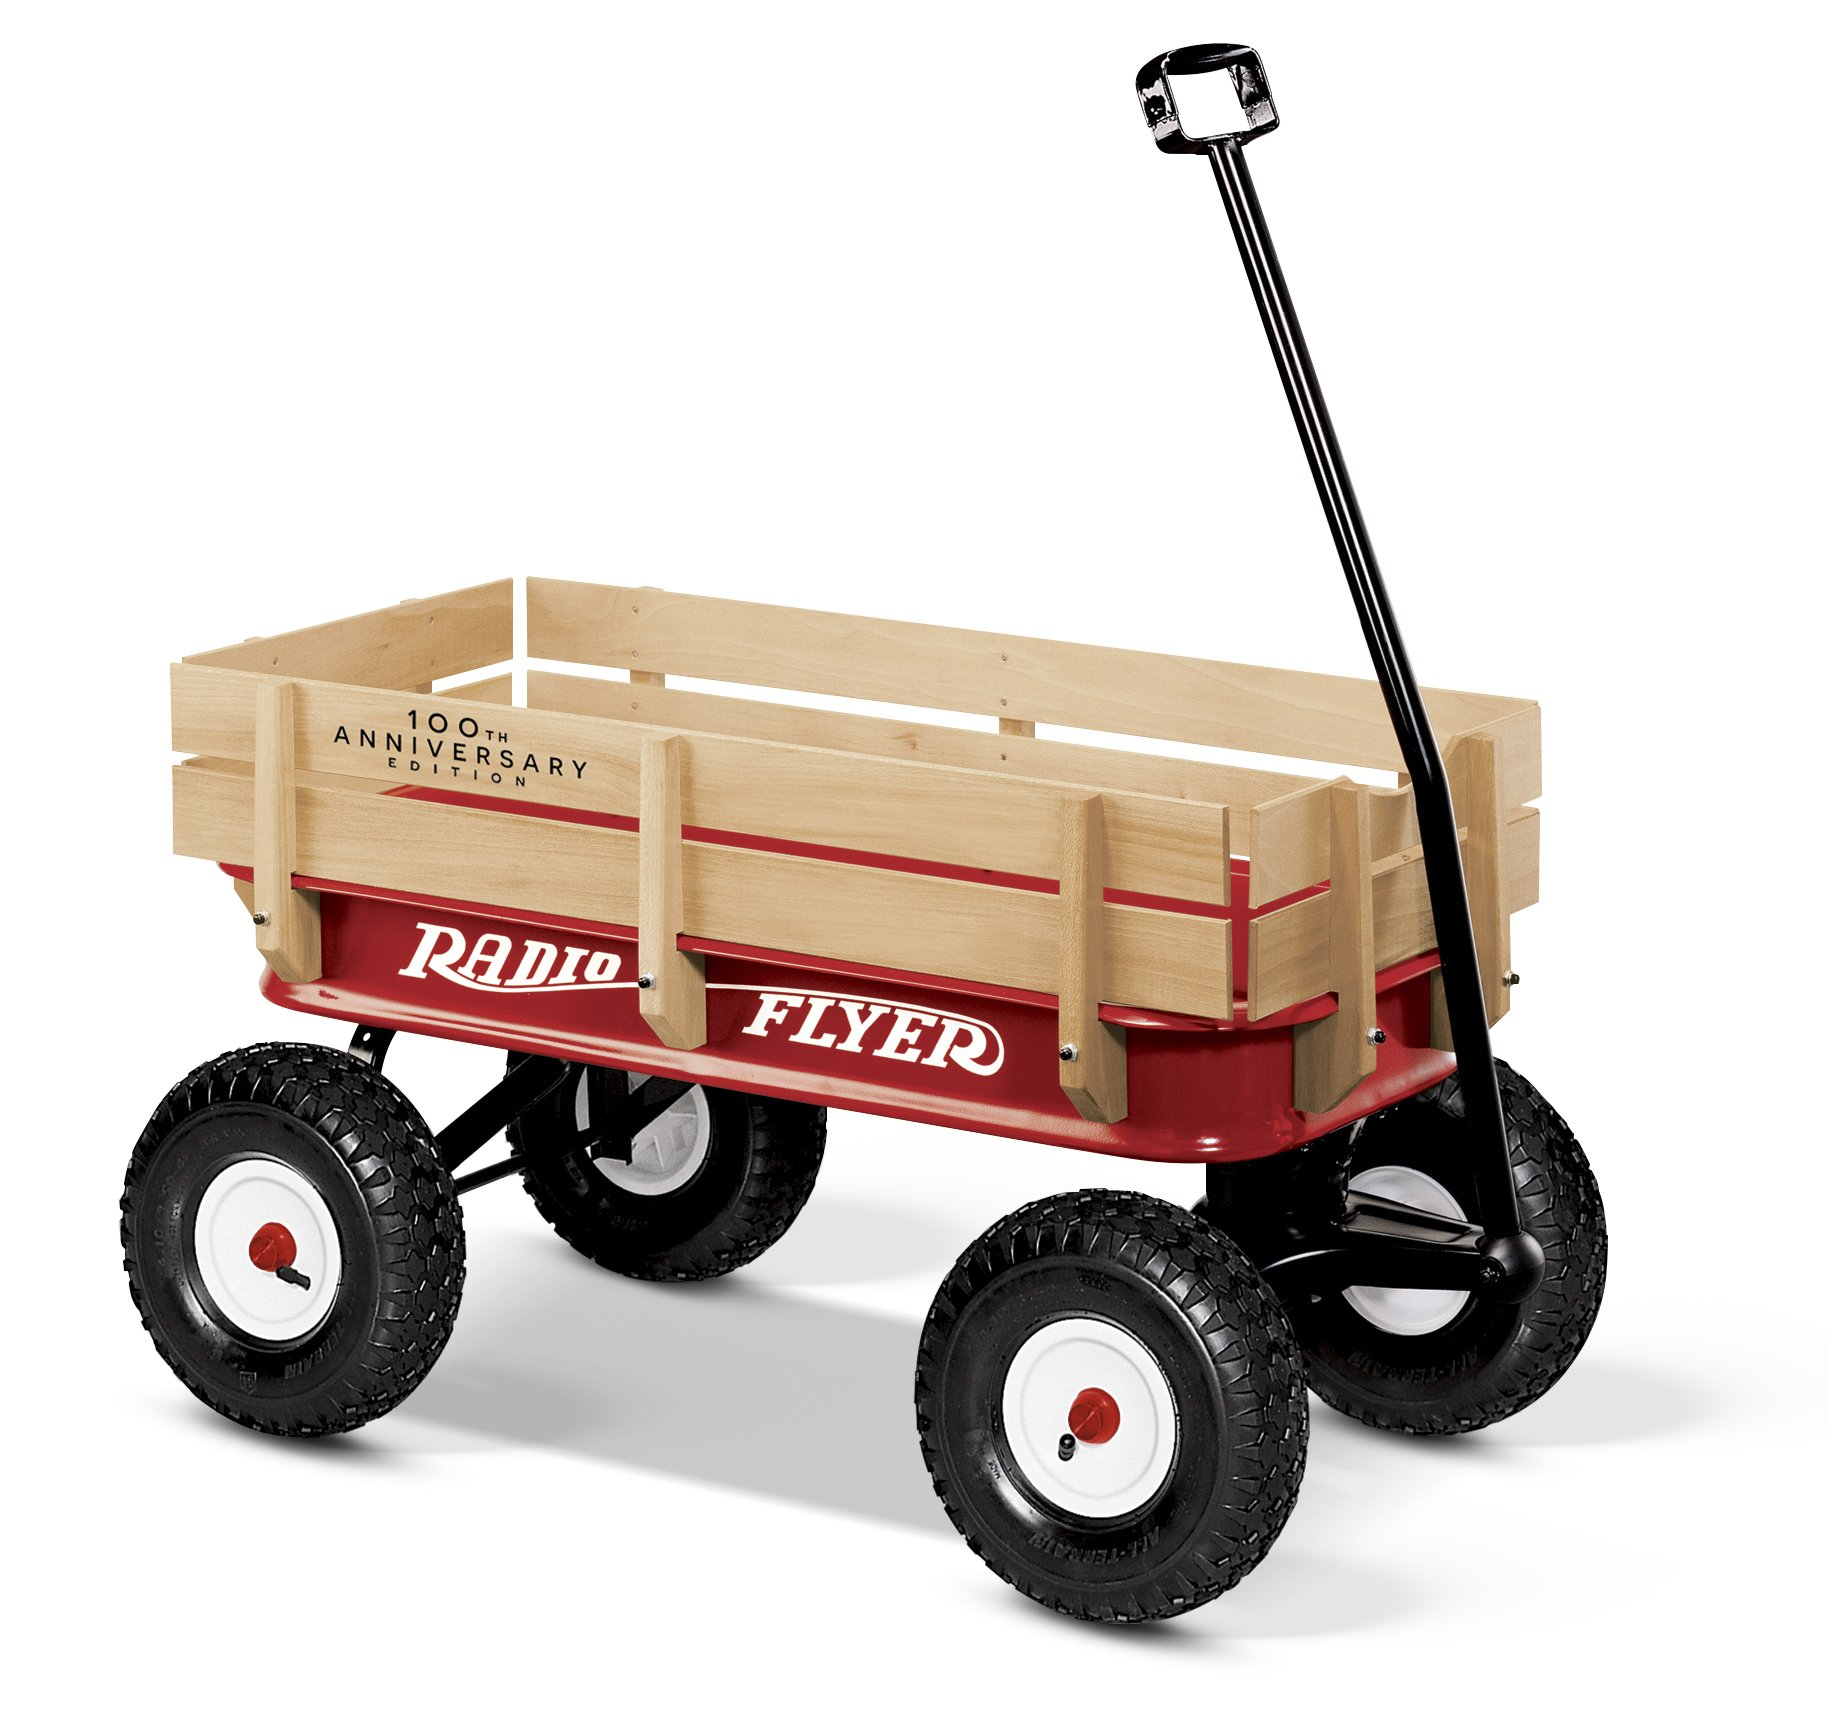 Radio Flyer All-Terrain Wagon - 100th Anniversary Edition